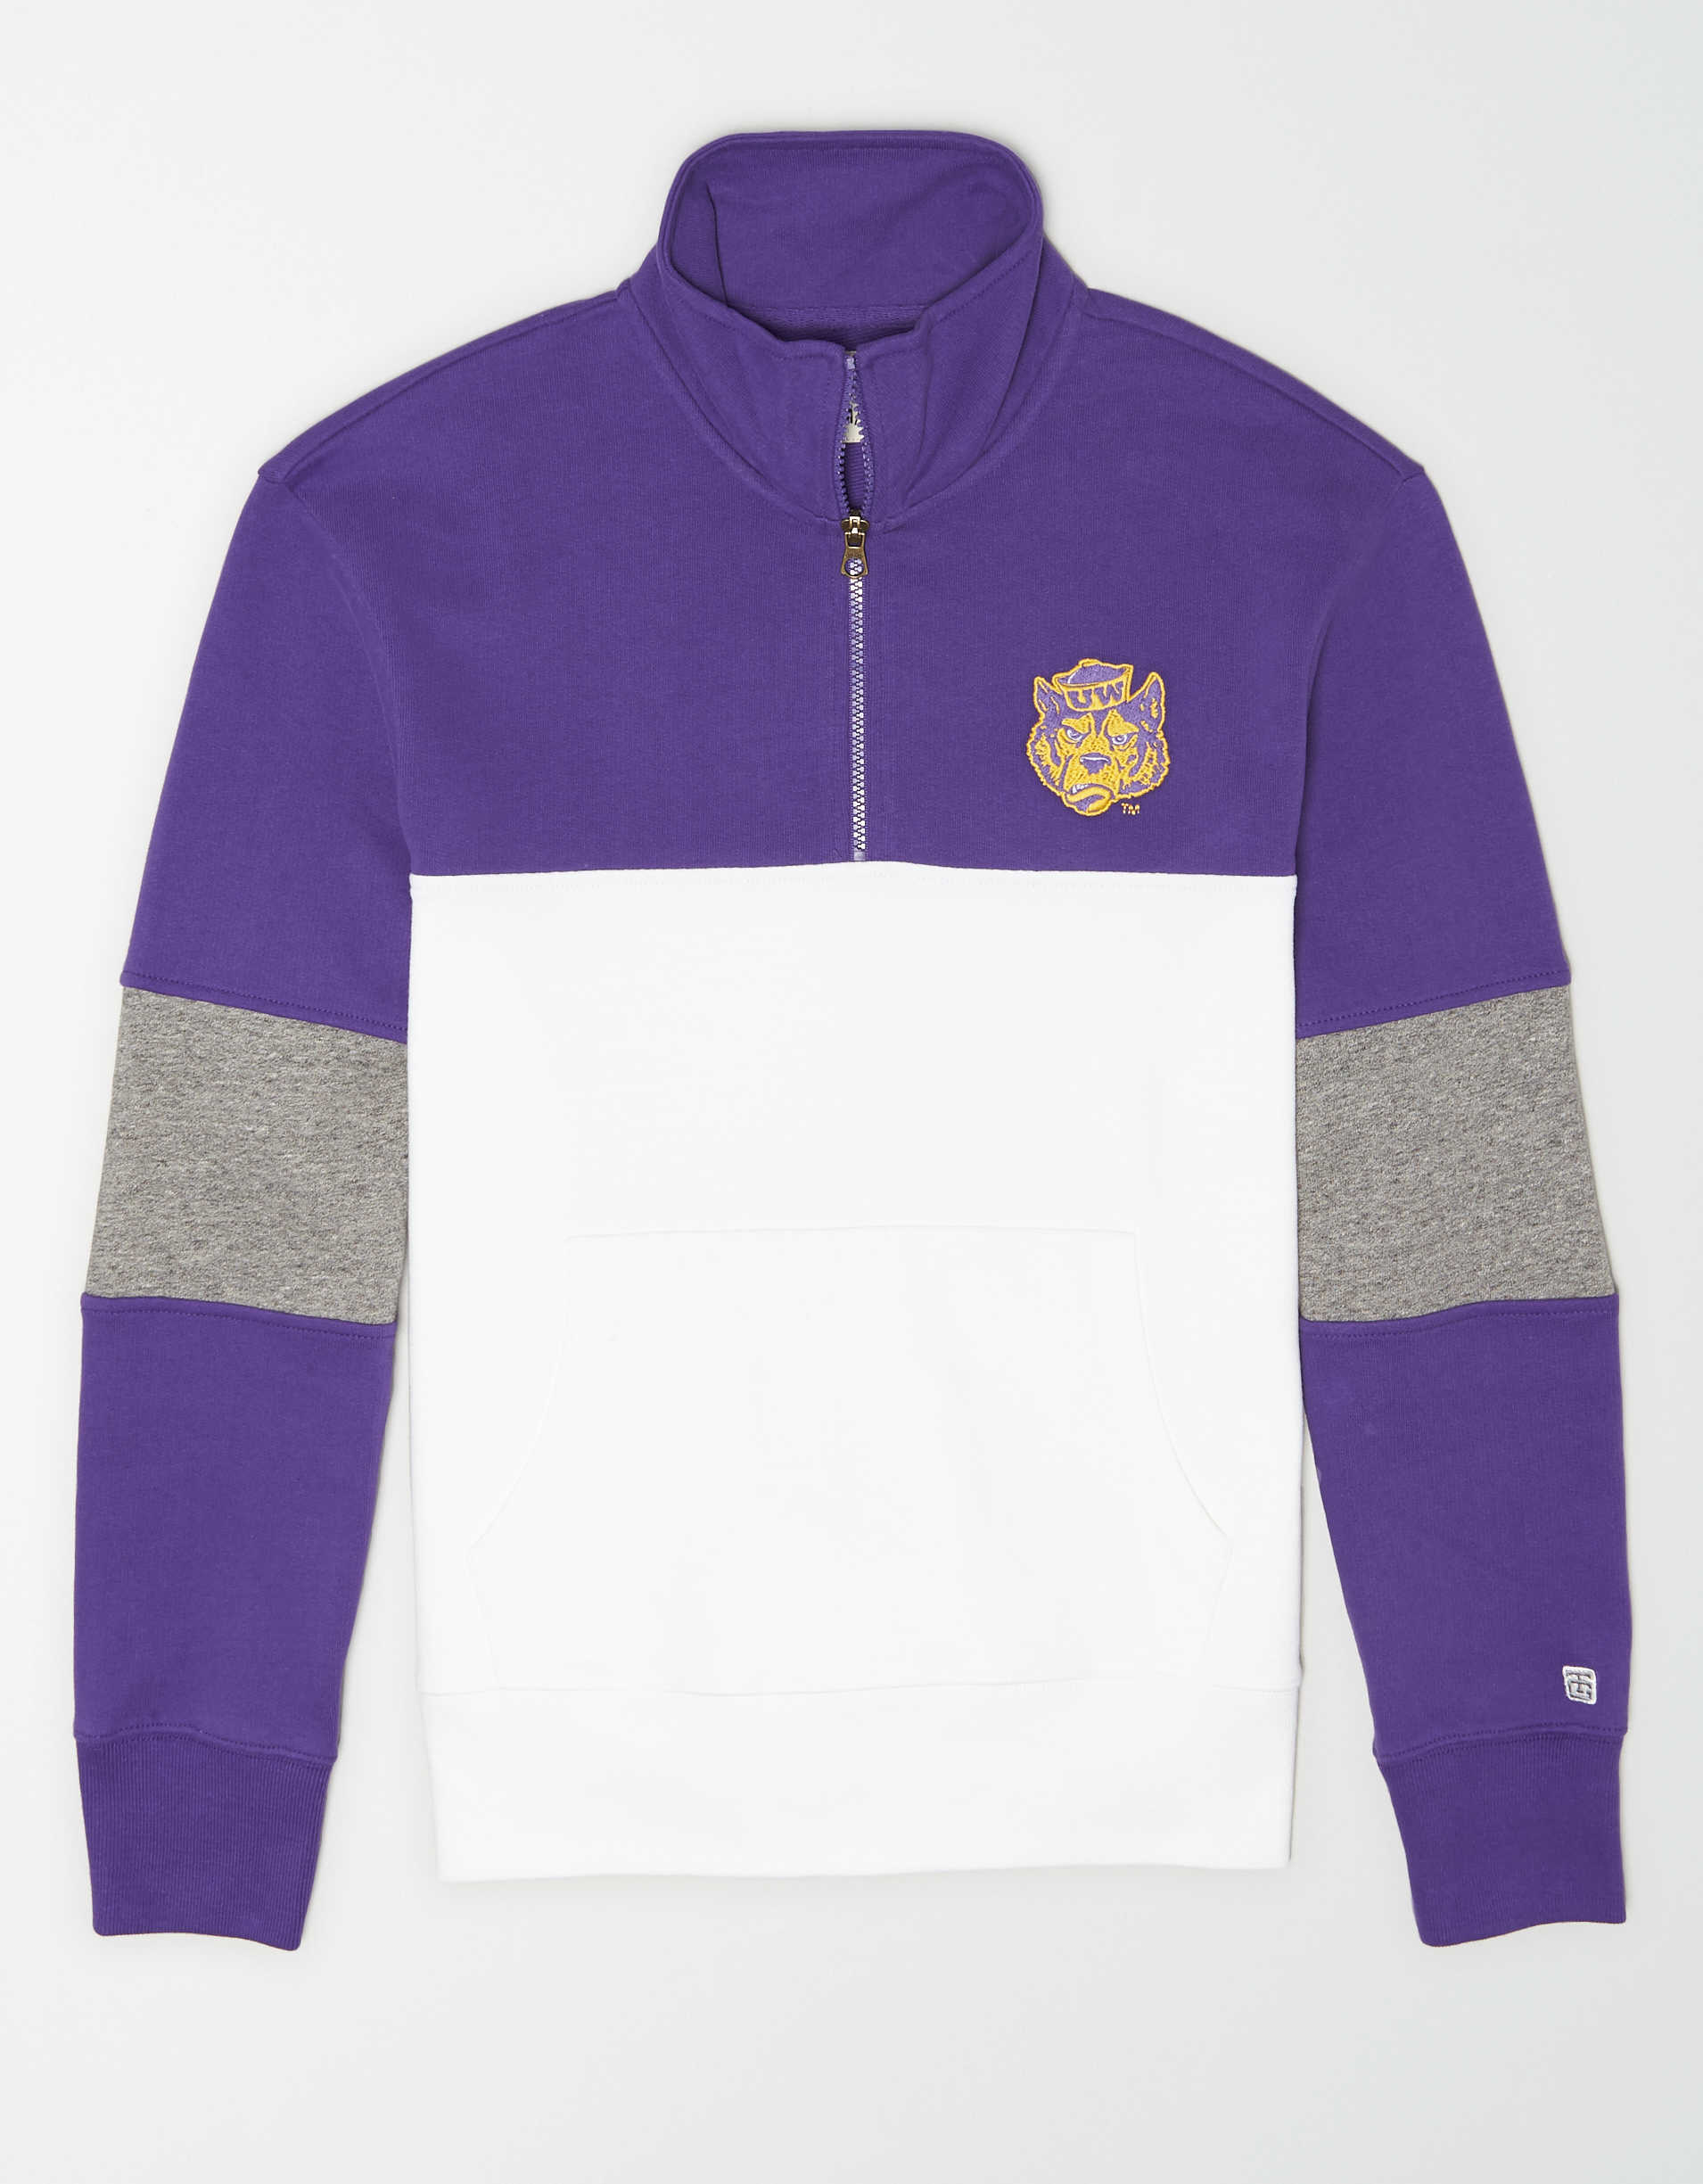 Tailgate Men's Washington Huskies Quarter-Zip Sweatshirt